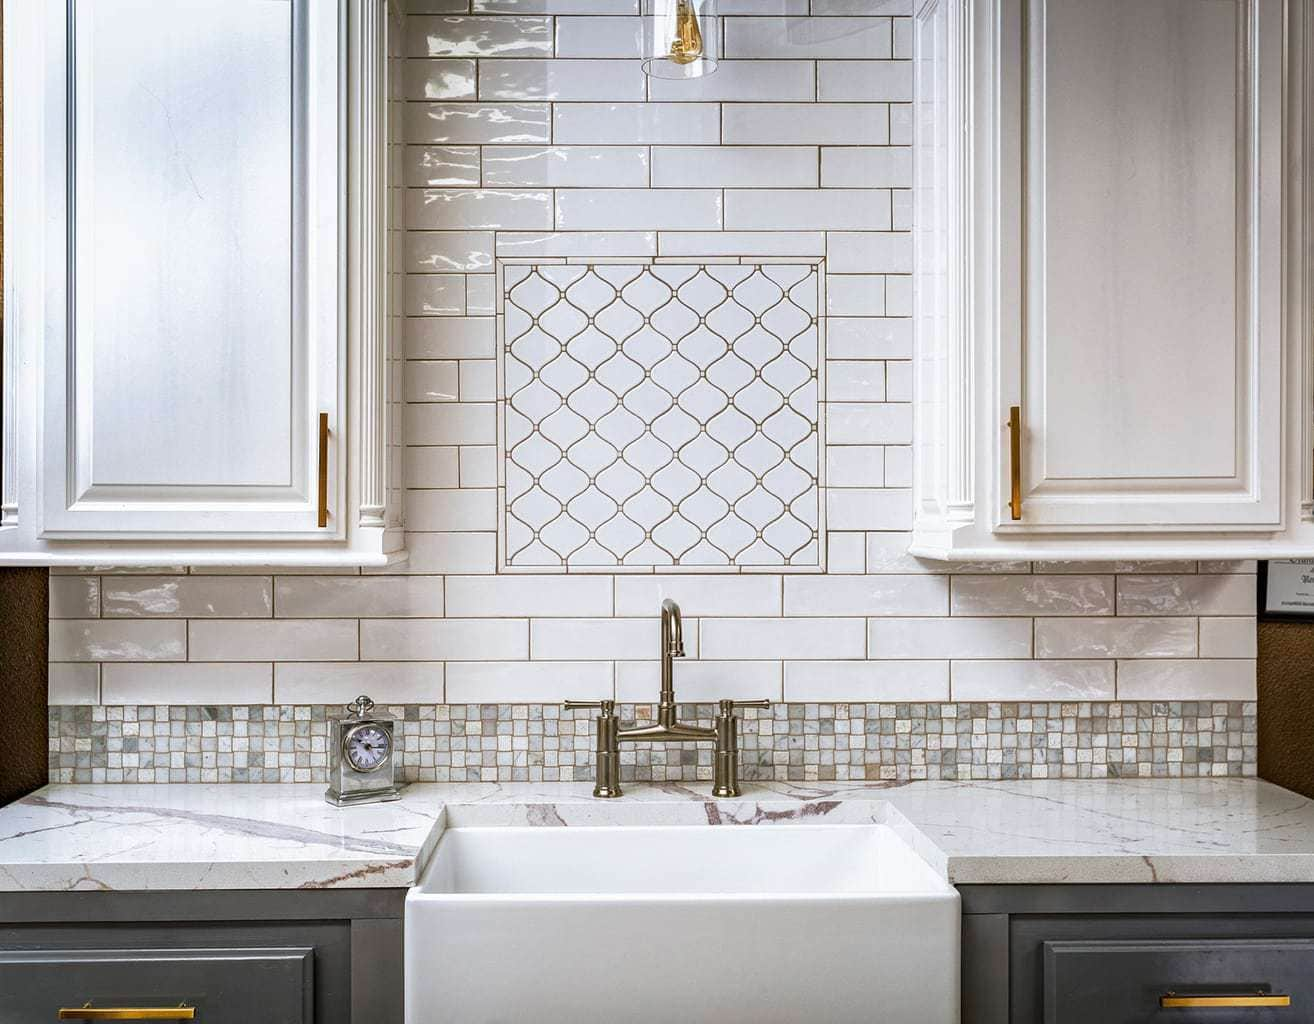 Kitchen Tile Backsplash Ideas That Are Easy And Inexpensive